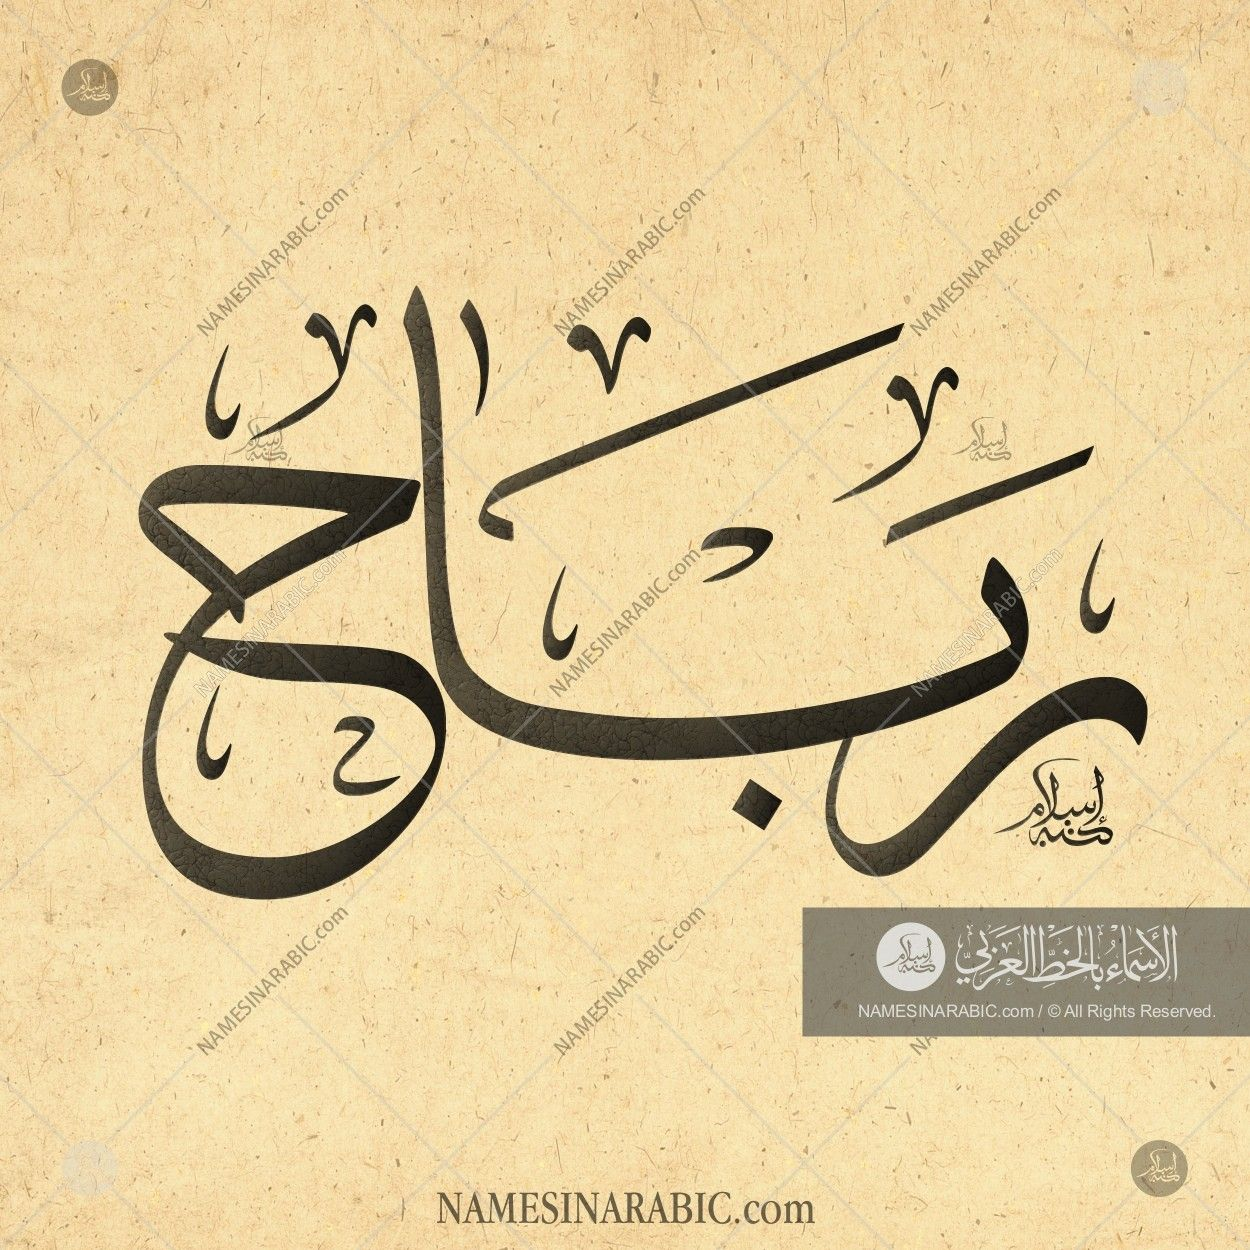 Rabah رباح Names In Arabic Calligraphy Name 3494 Calligraphy Name Calligraphy Names